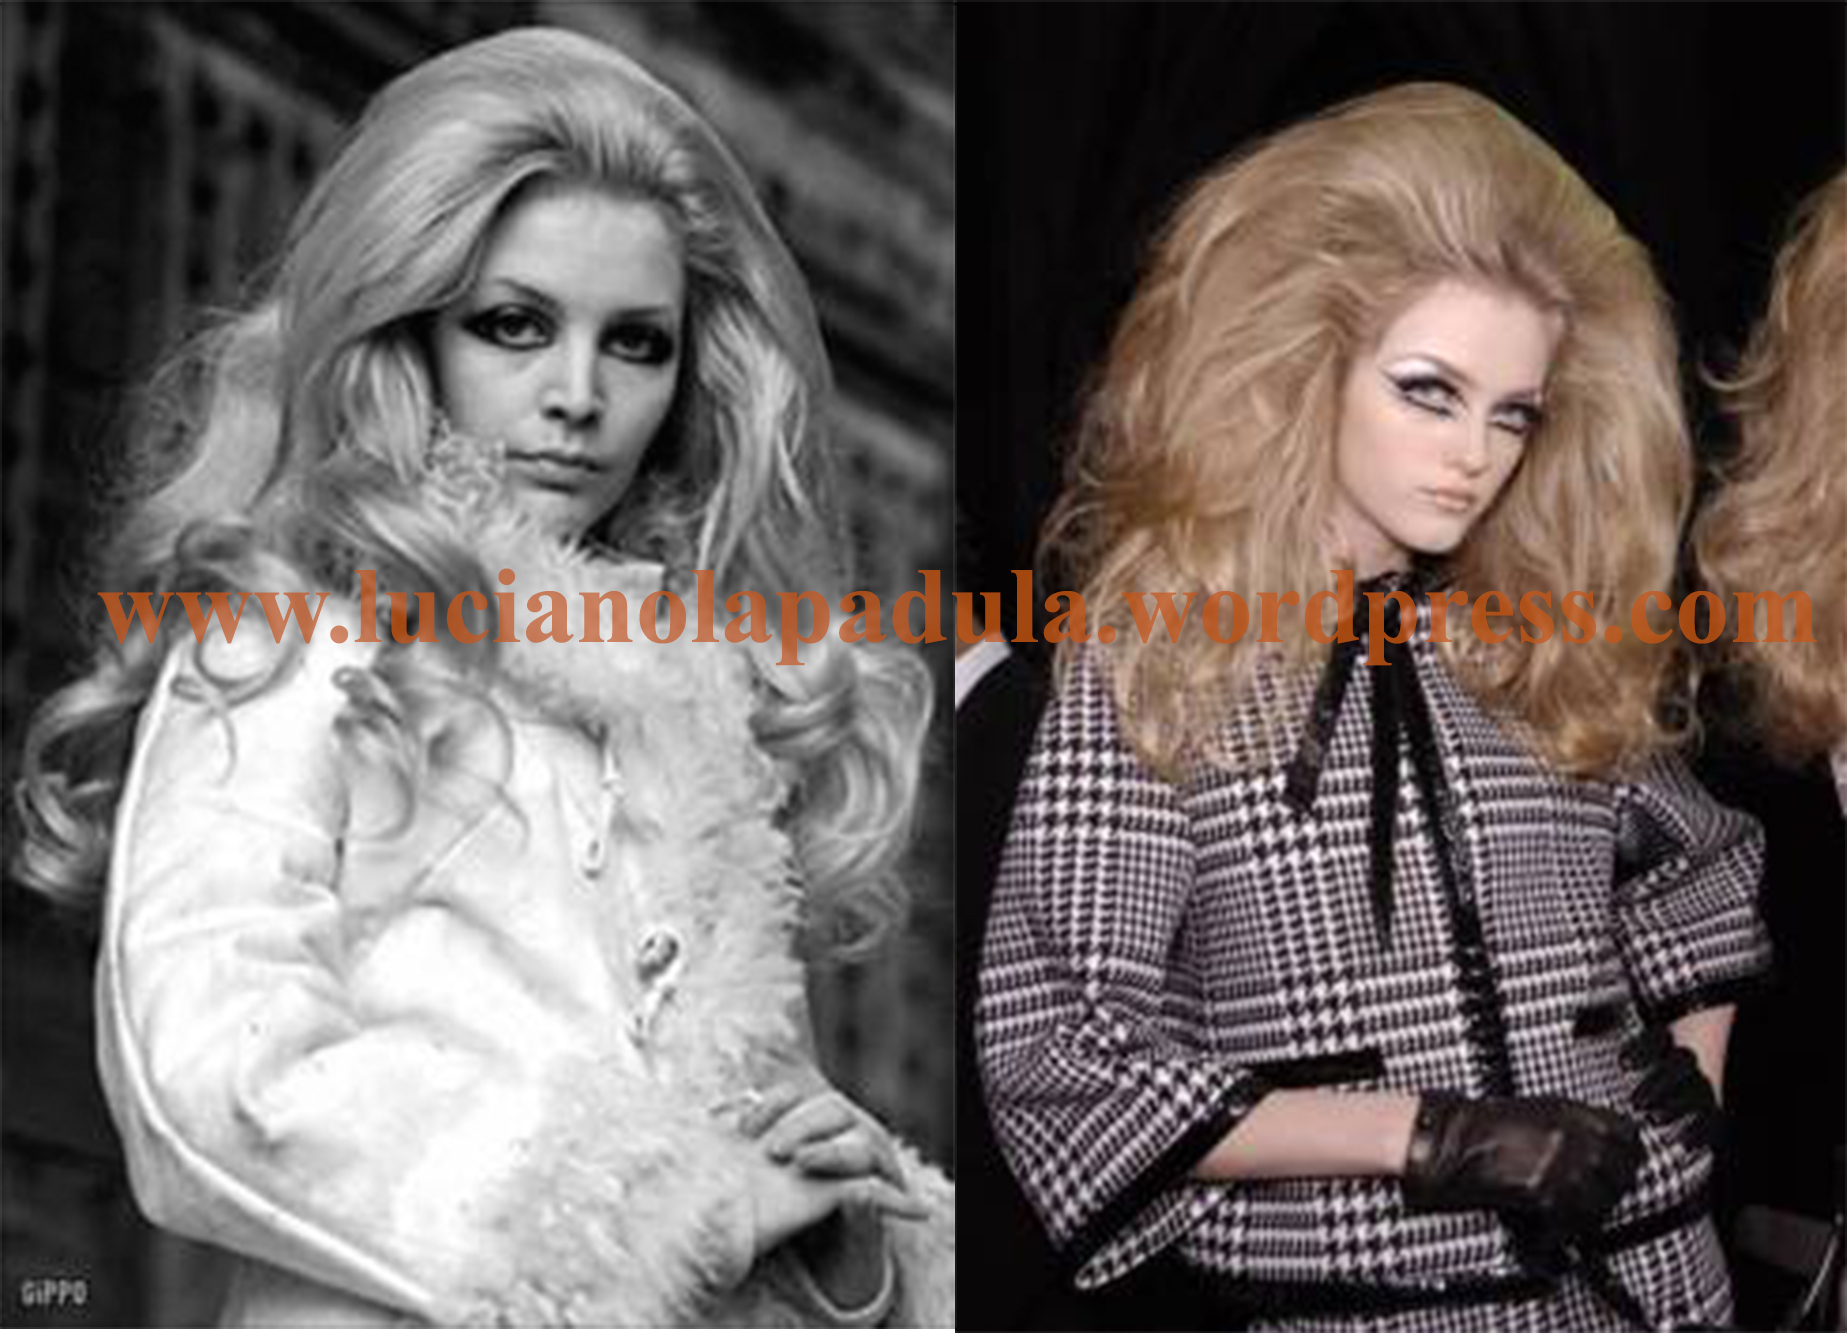 wordpress patty pravo dior hairstyle outfit moda fashion history blog blogger